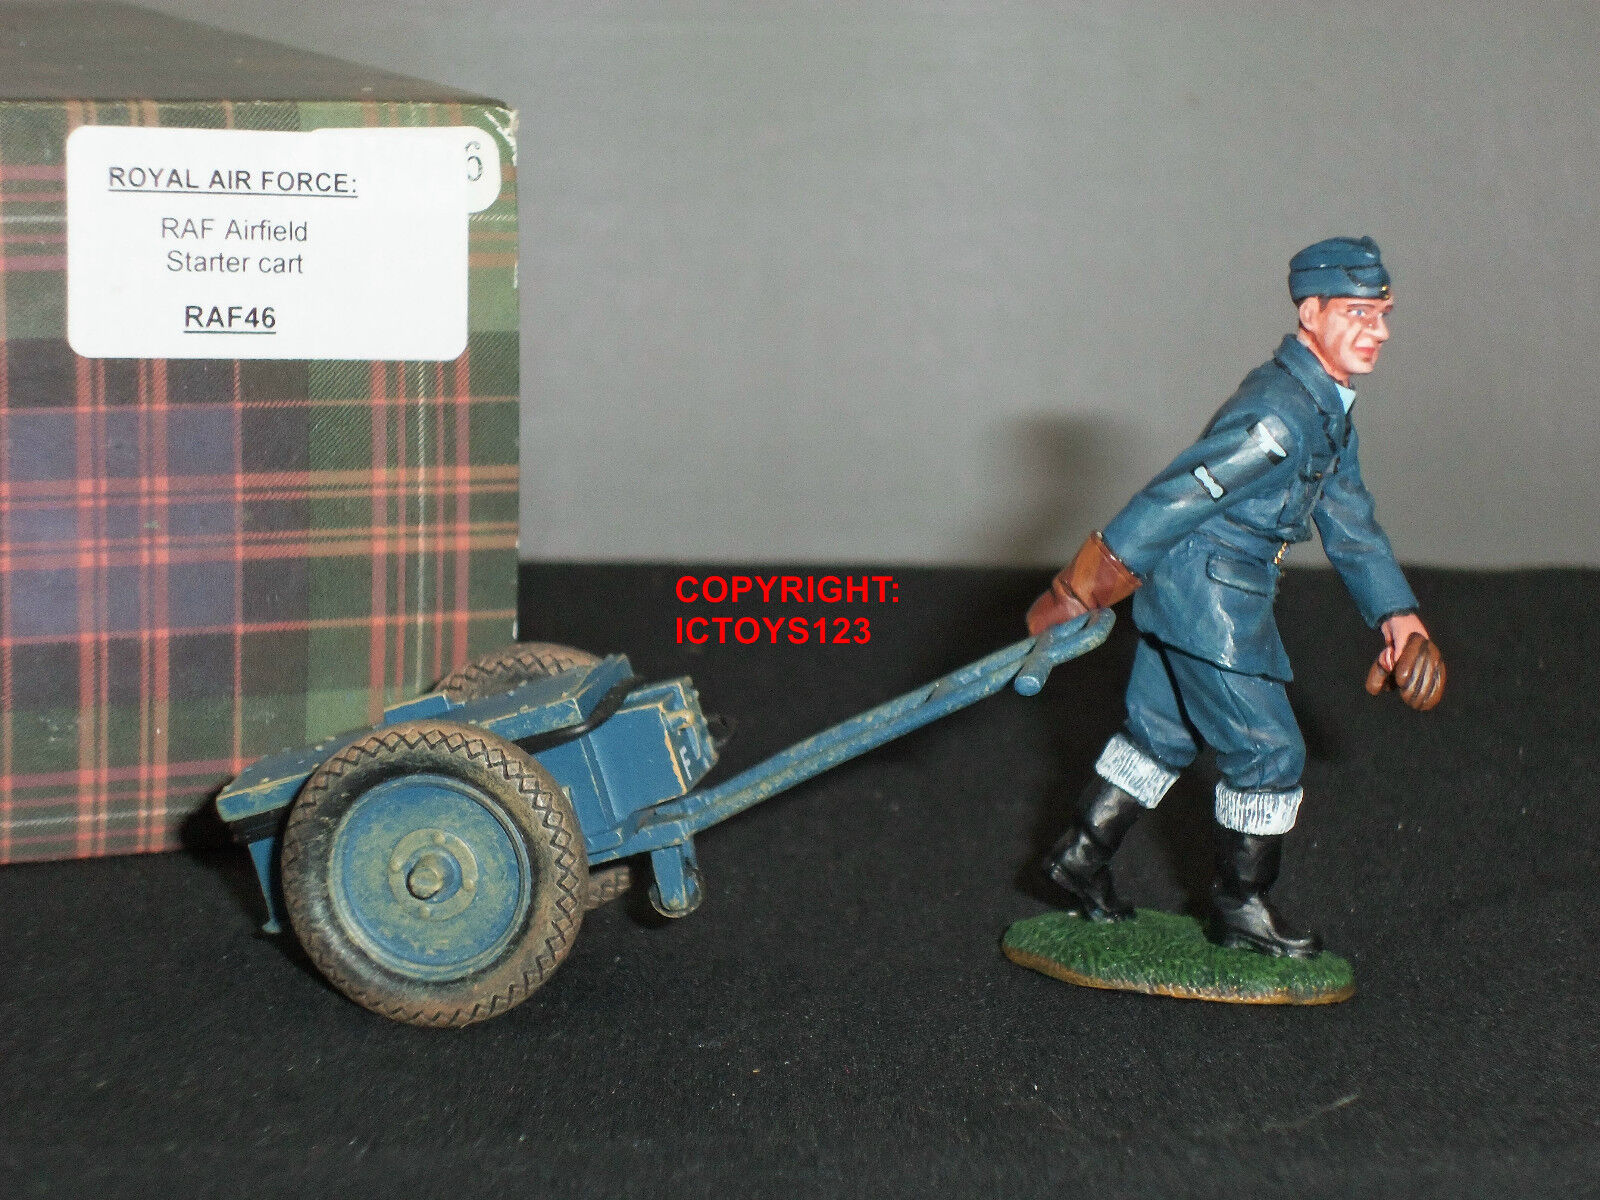 KING AND COUNTRY RAF46 ROYAL AIR FORCE RAF AIRFIELD STARTER CART TOY SOLDIER SET